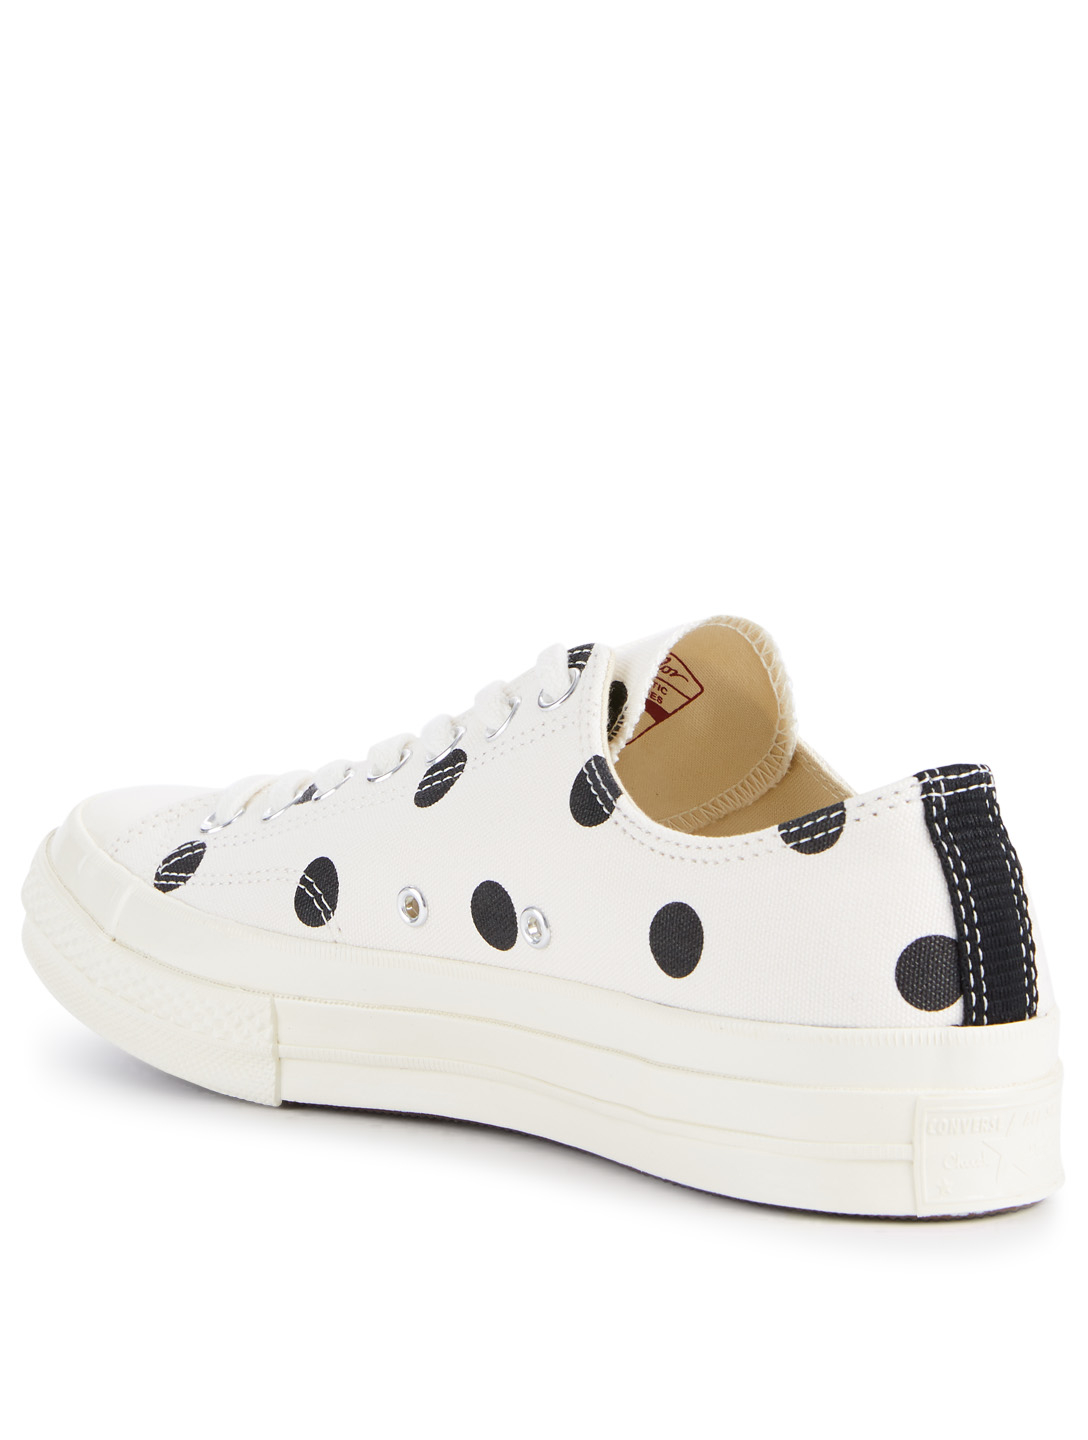 COMME DES GARÇONS PLAY Converse x CDG PLAY Chuck Taylor '70 Canvas Sneakers In Polka Dot Men's Neutral